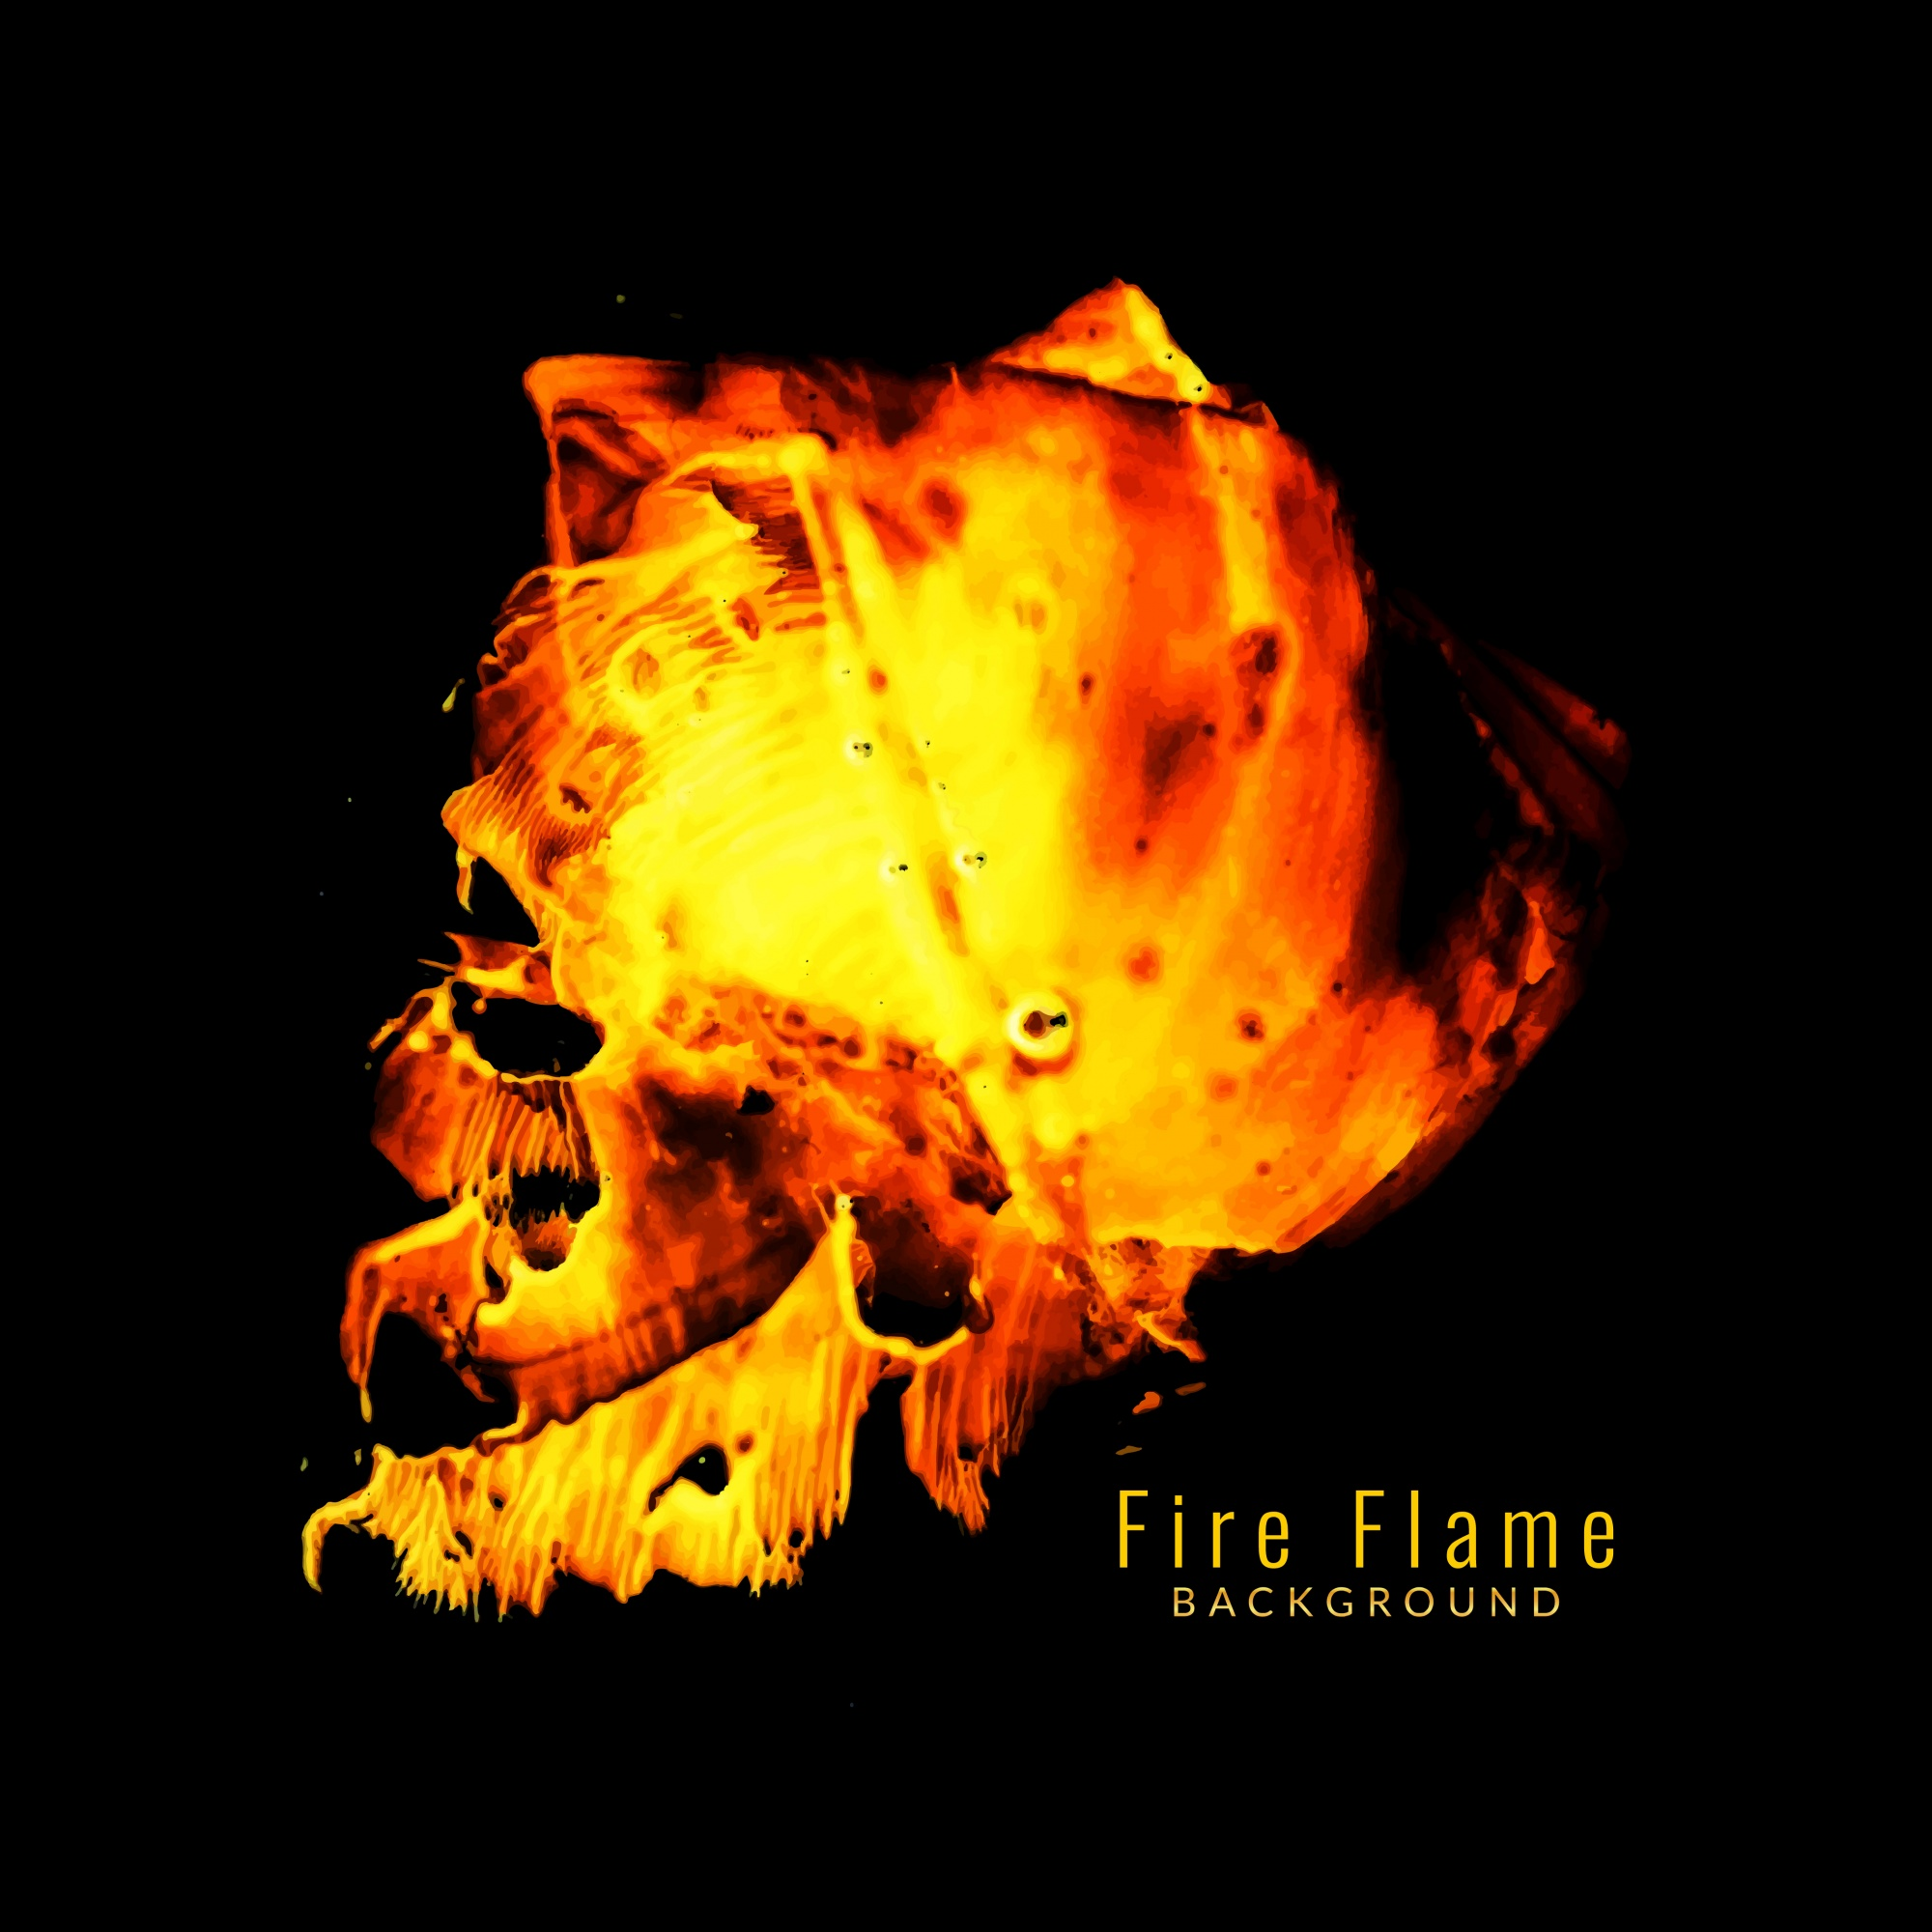 Beautiful fire flame background